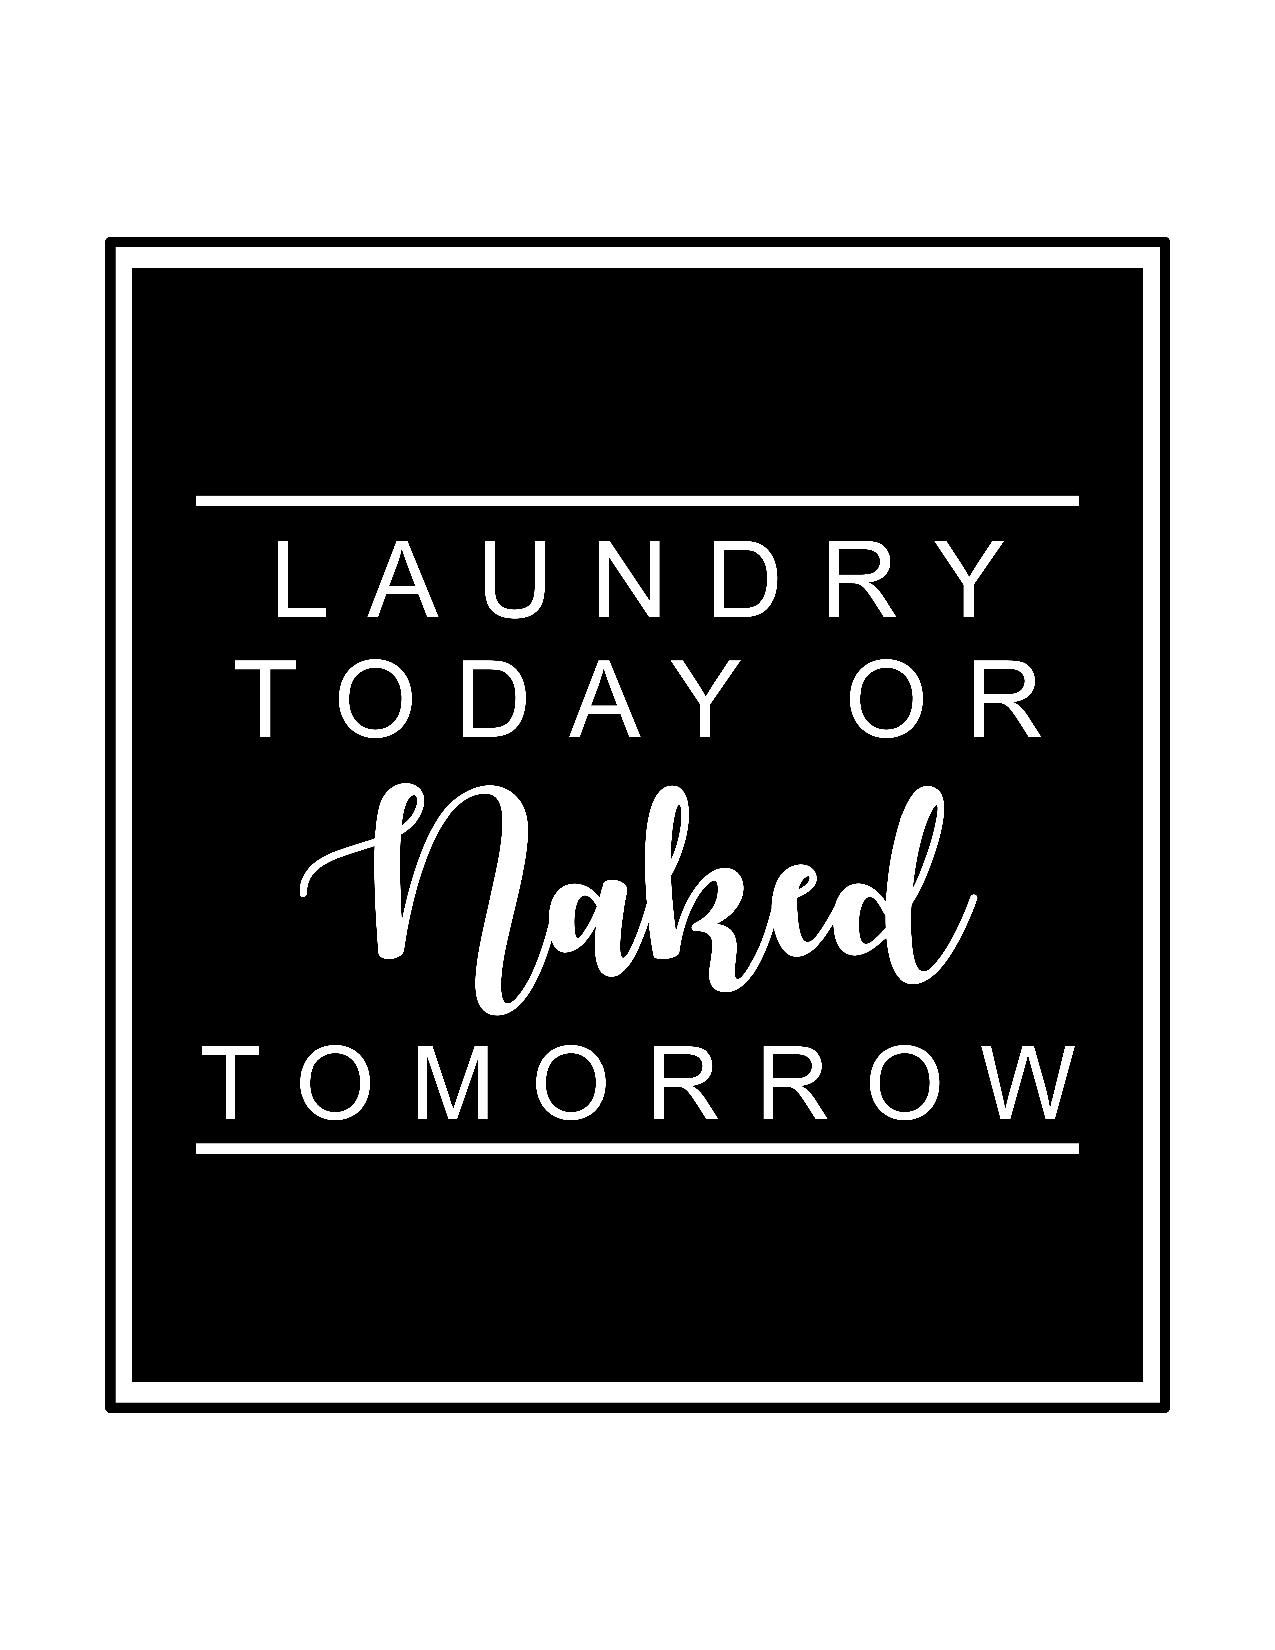 Free Laundry Room Printables The Mountain View Cottage Laundry Room Printables Laundry Room Quotes Laundry Humor